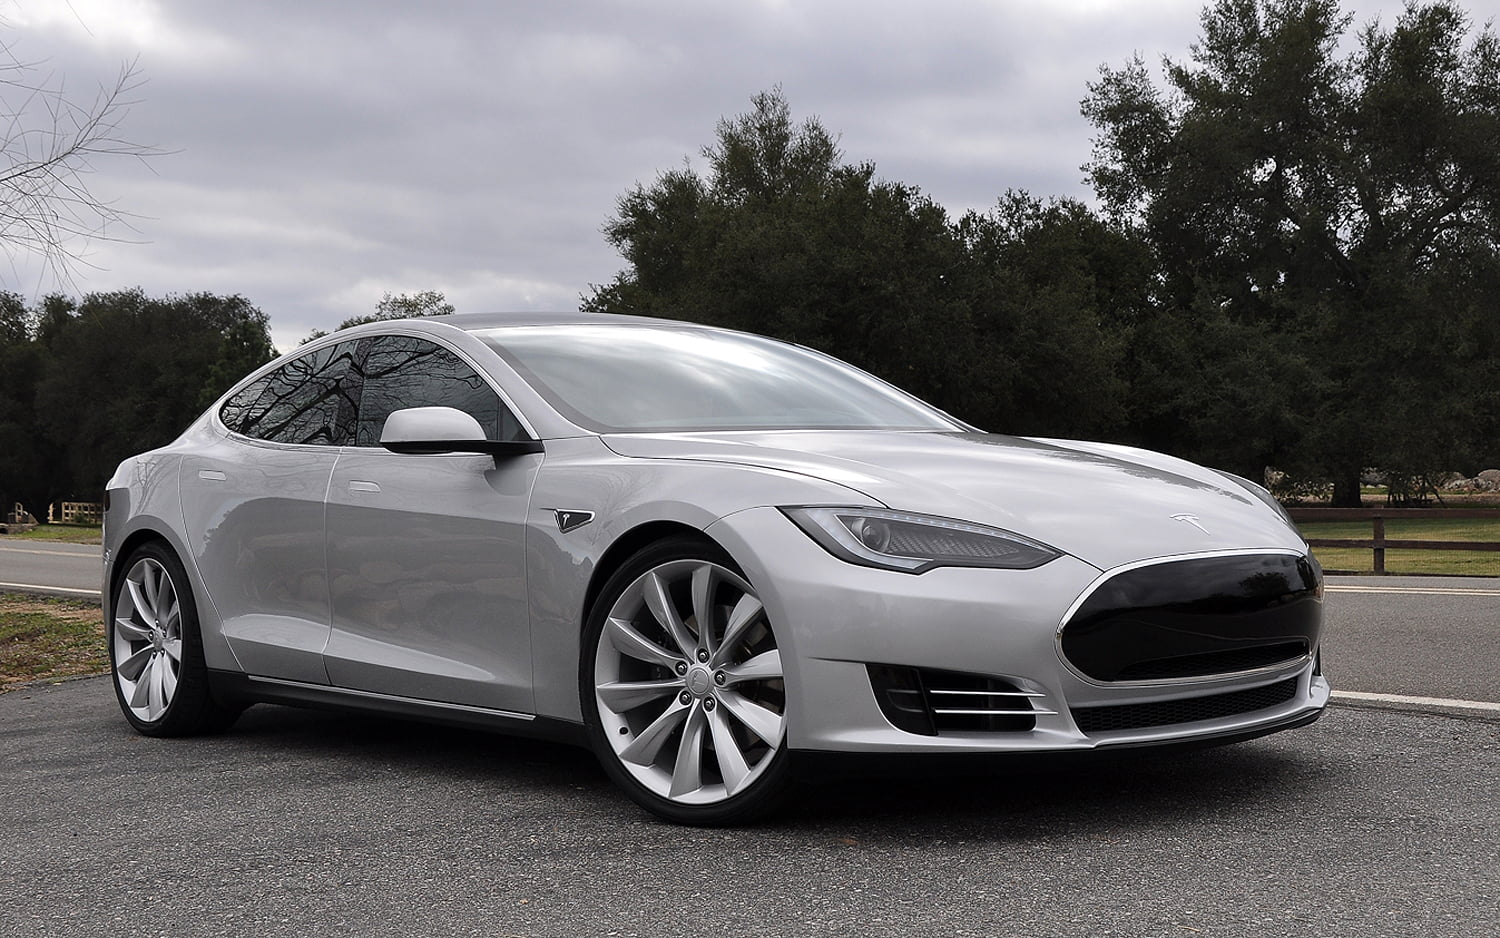 tesla model s voiture lectrique essais prix caract ristiques. Black Bedroom Furniture Sets. Home Design Ideas